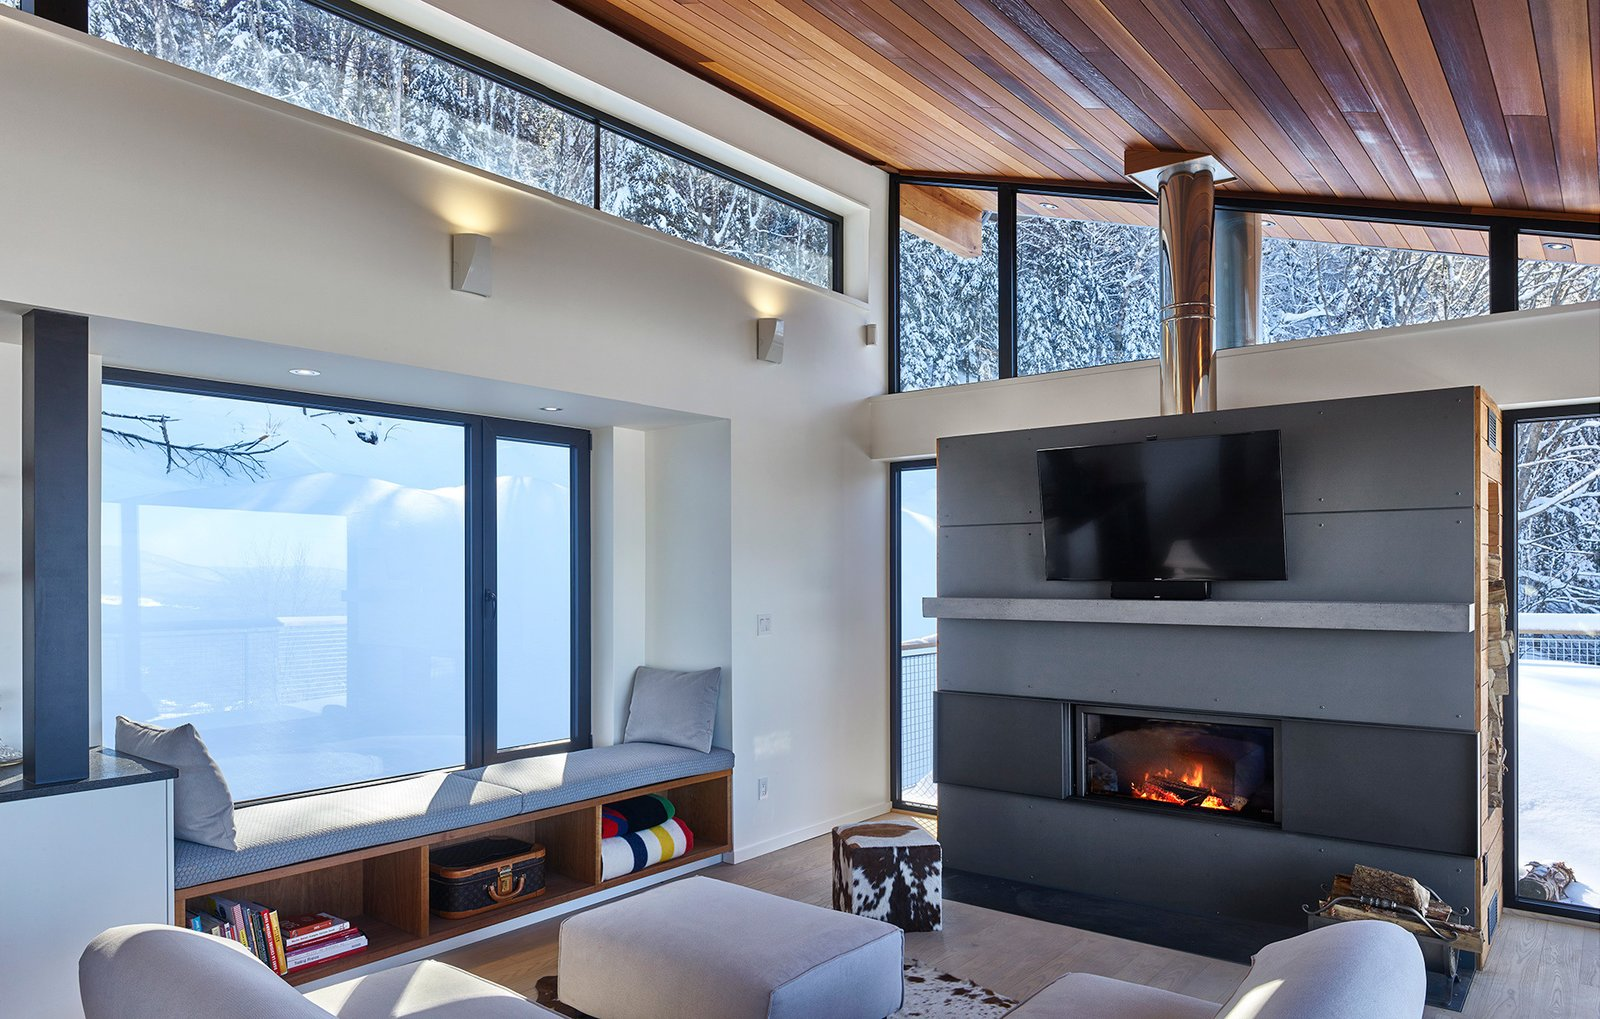 Stuv fireplace and window seat with an up mountain view.  Laurentian Ski Chalet by RobitailleCurtis